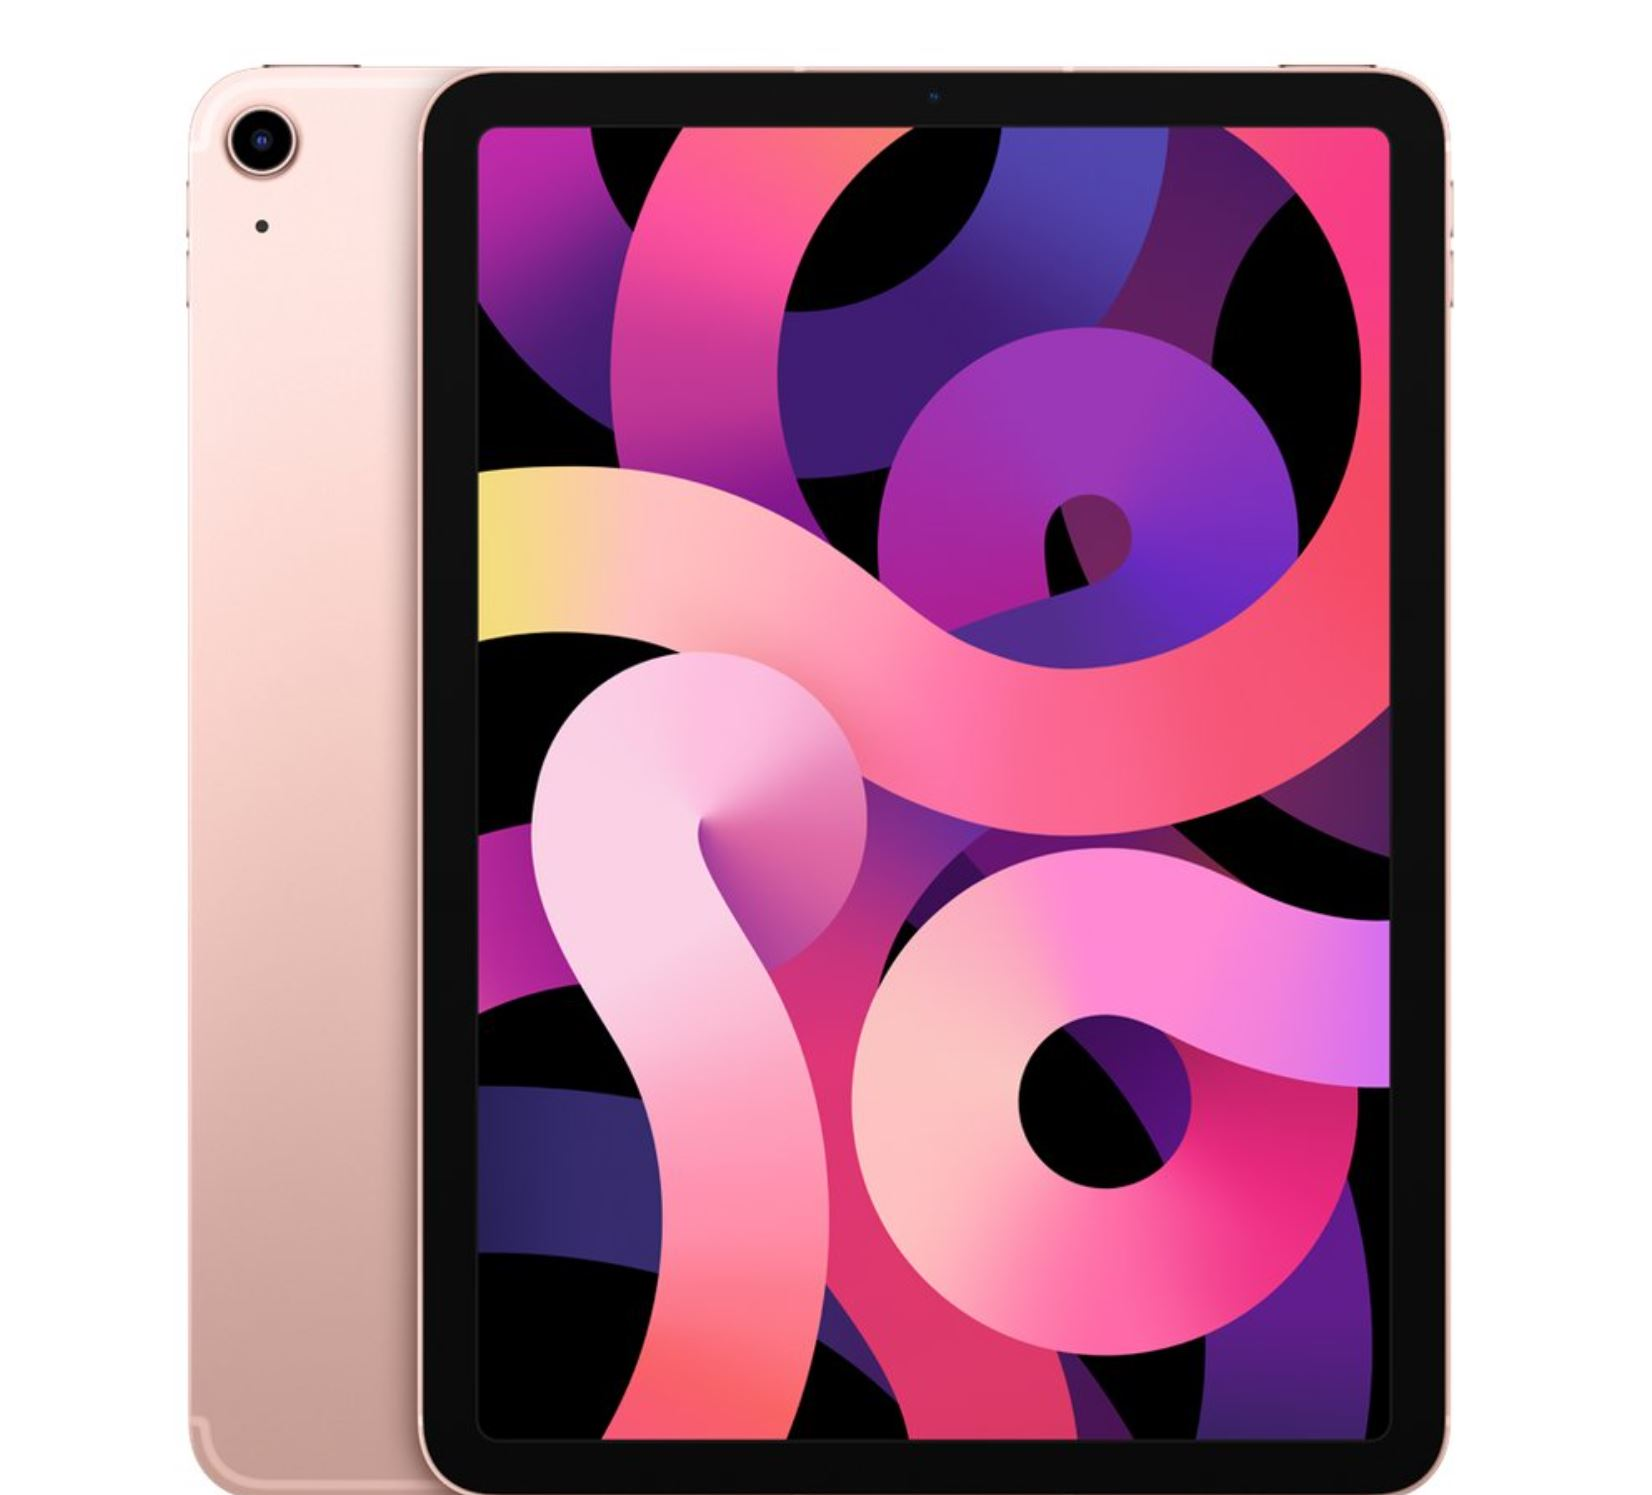 The New Apple Ipad Air 4th Gen Comes With A14 Bionic Processor All Screen Design And Usb C Mspoweruser